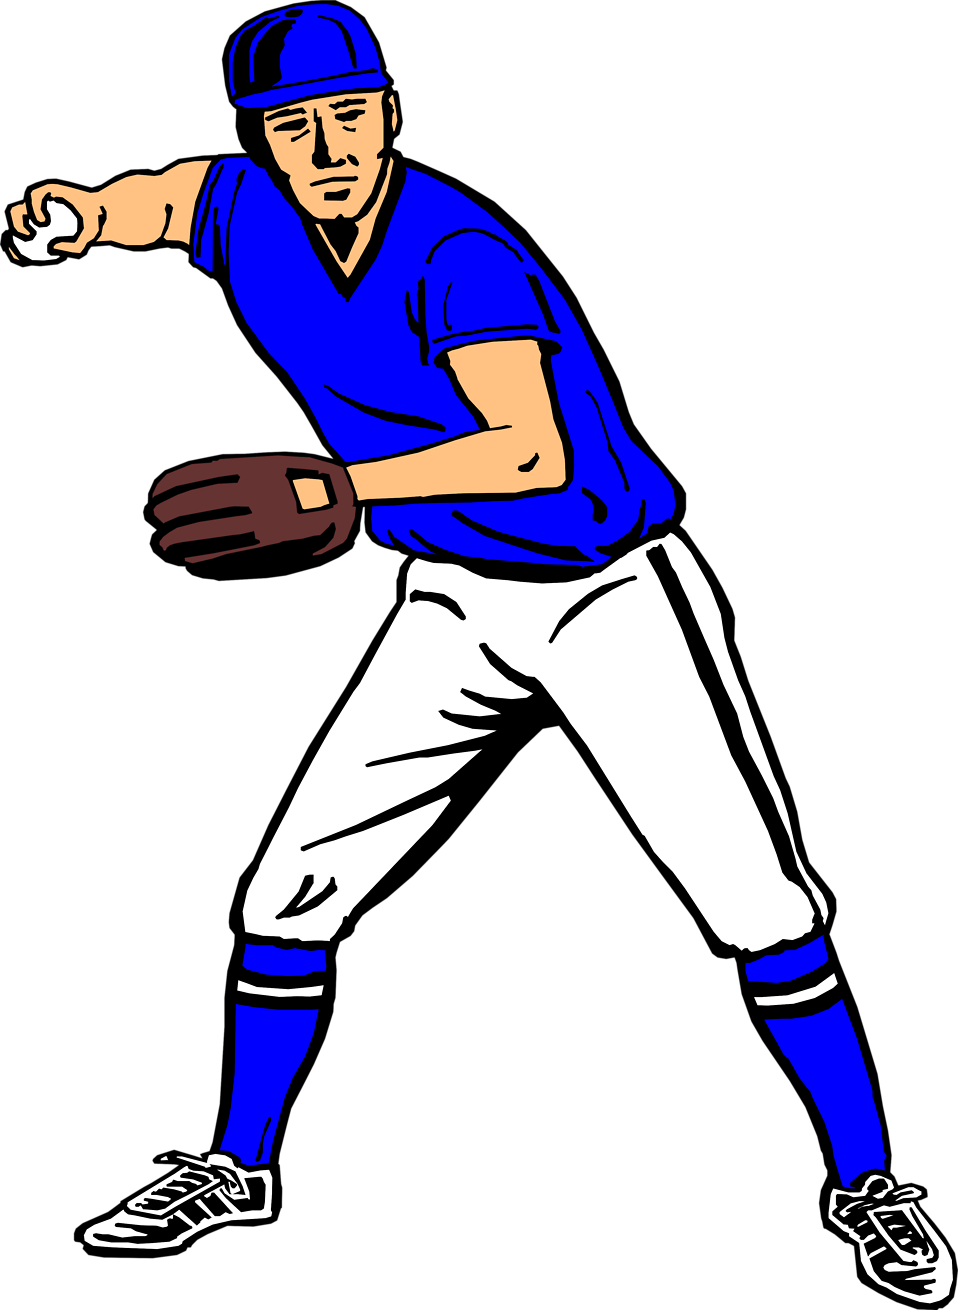 Catcher clipart baseball pitcher. Player free image clip